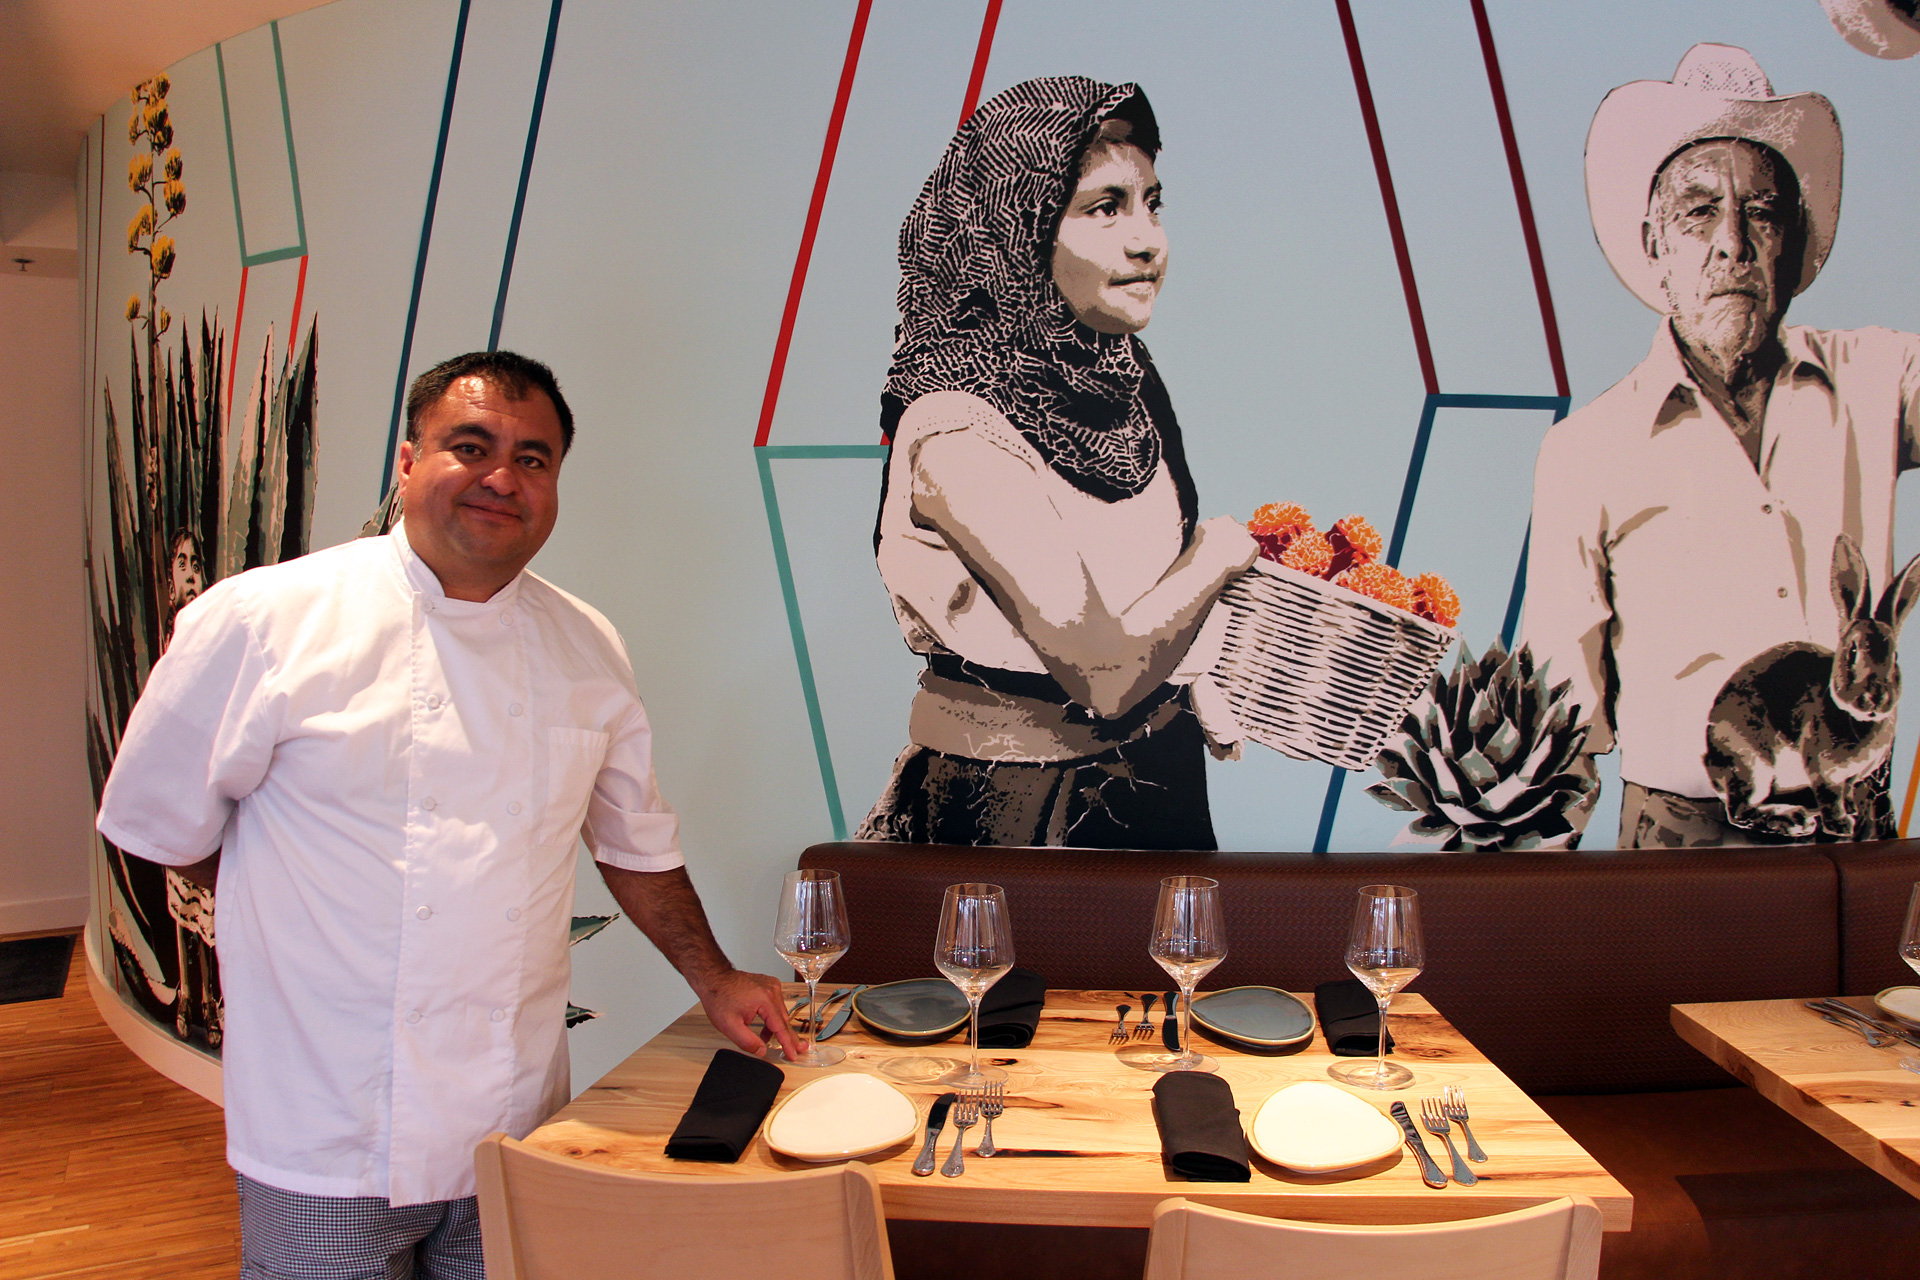 Chef Octavio Diaz in front of the mural at Agave Uptown